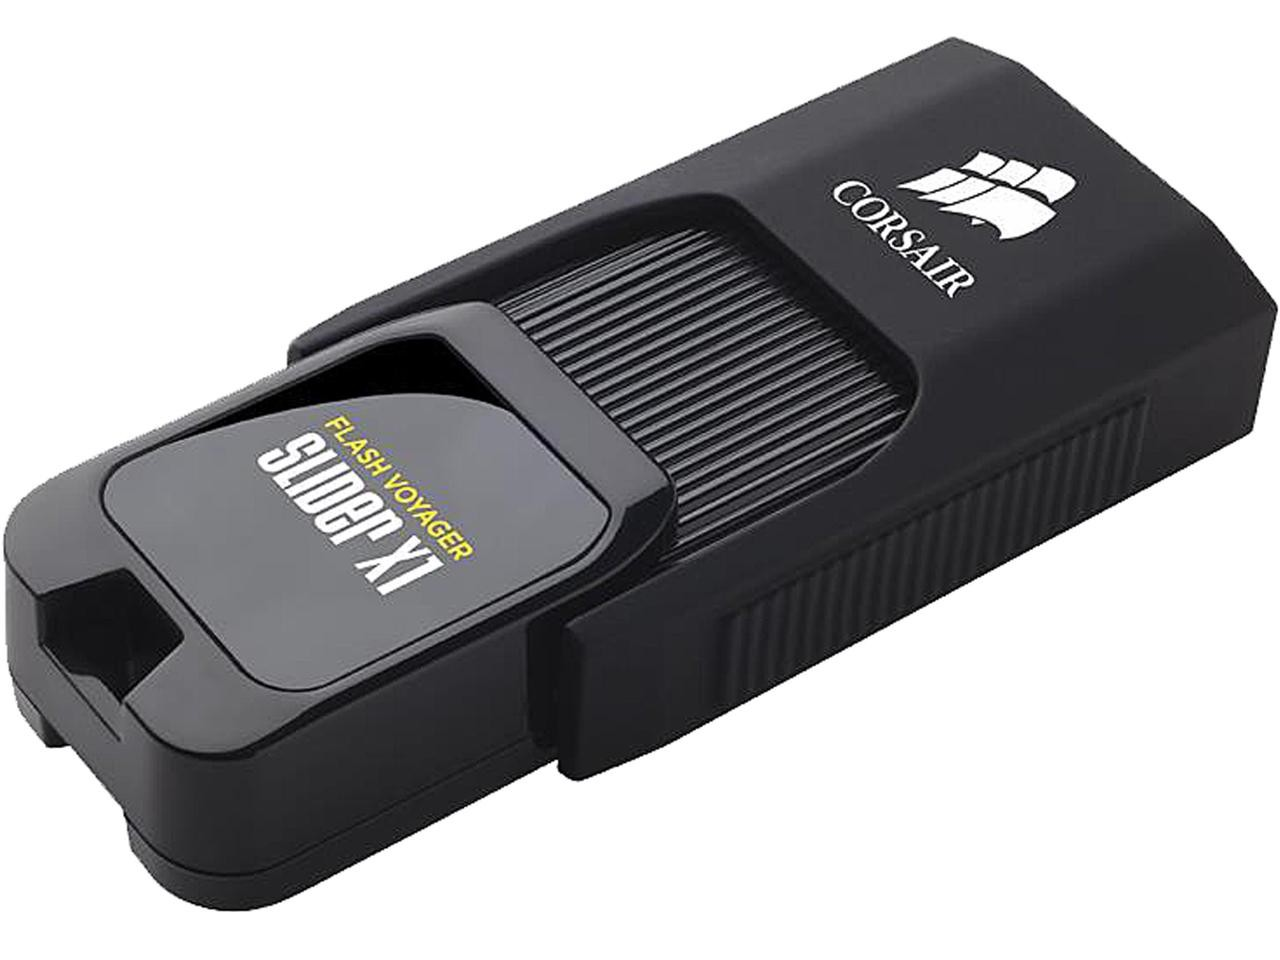 CORSAIR 16GB USB3.0 FLASH